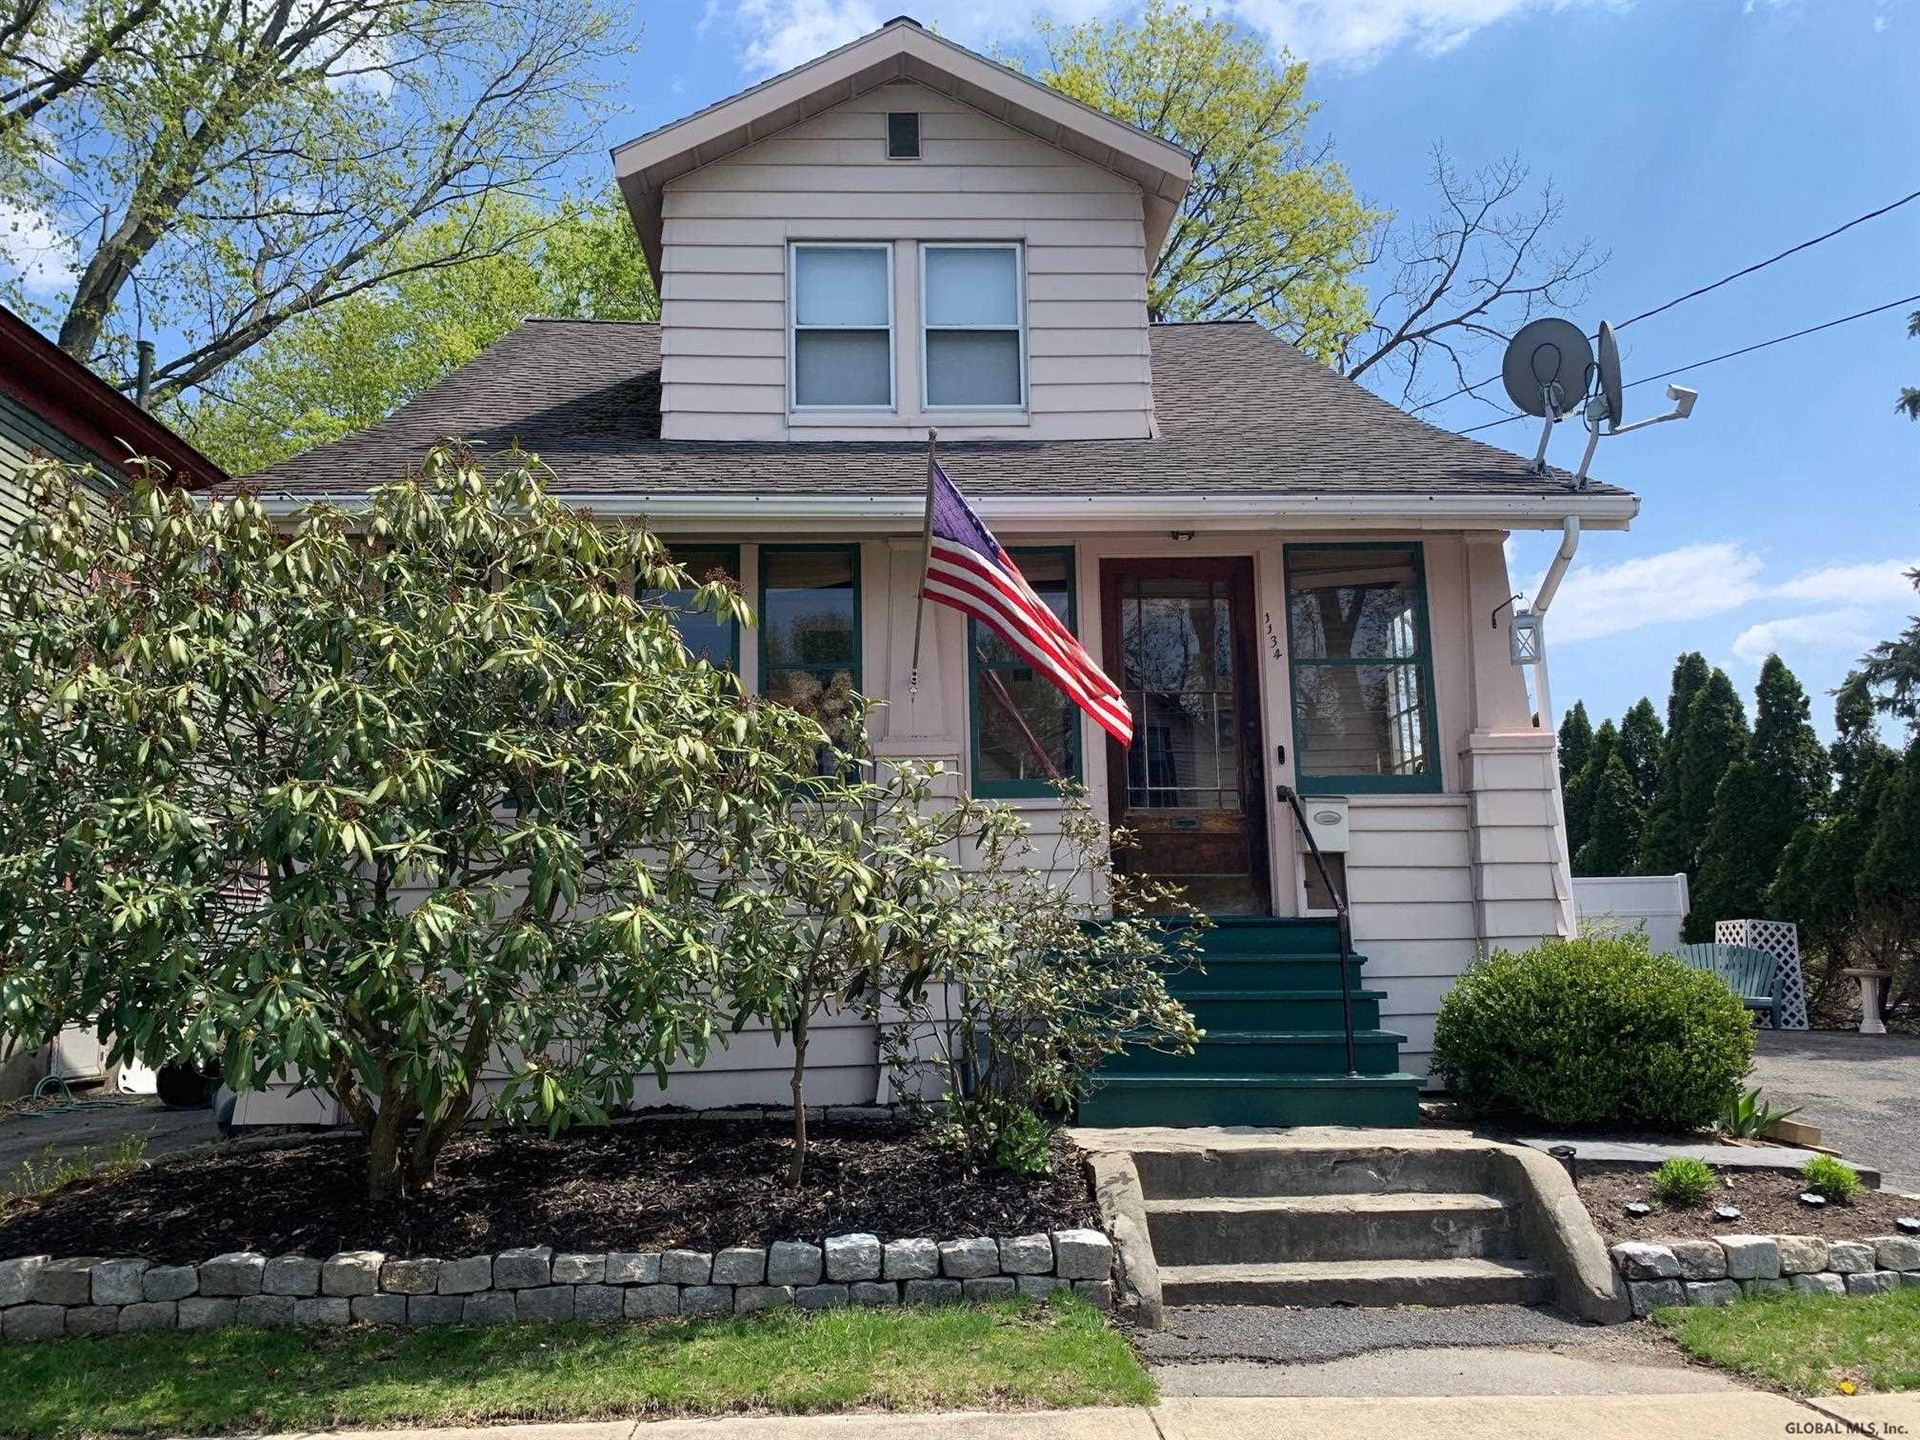 1134 4TH ST, Rensselaer, NY 12144 - #: 202117547